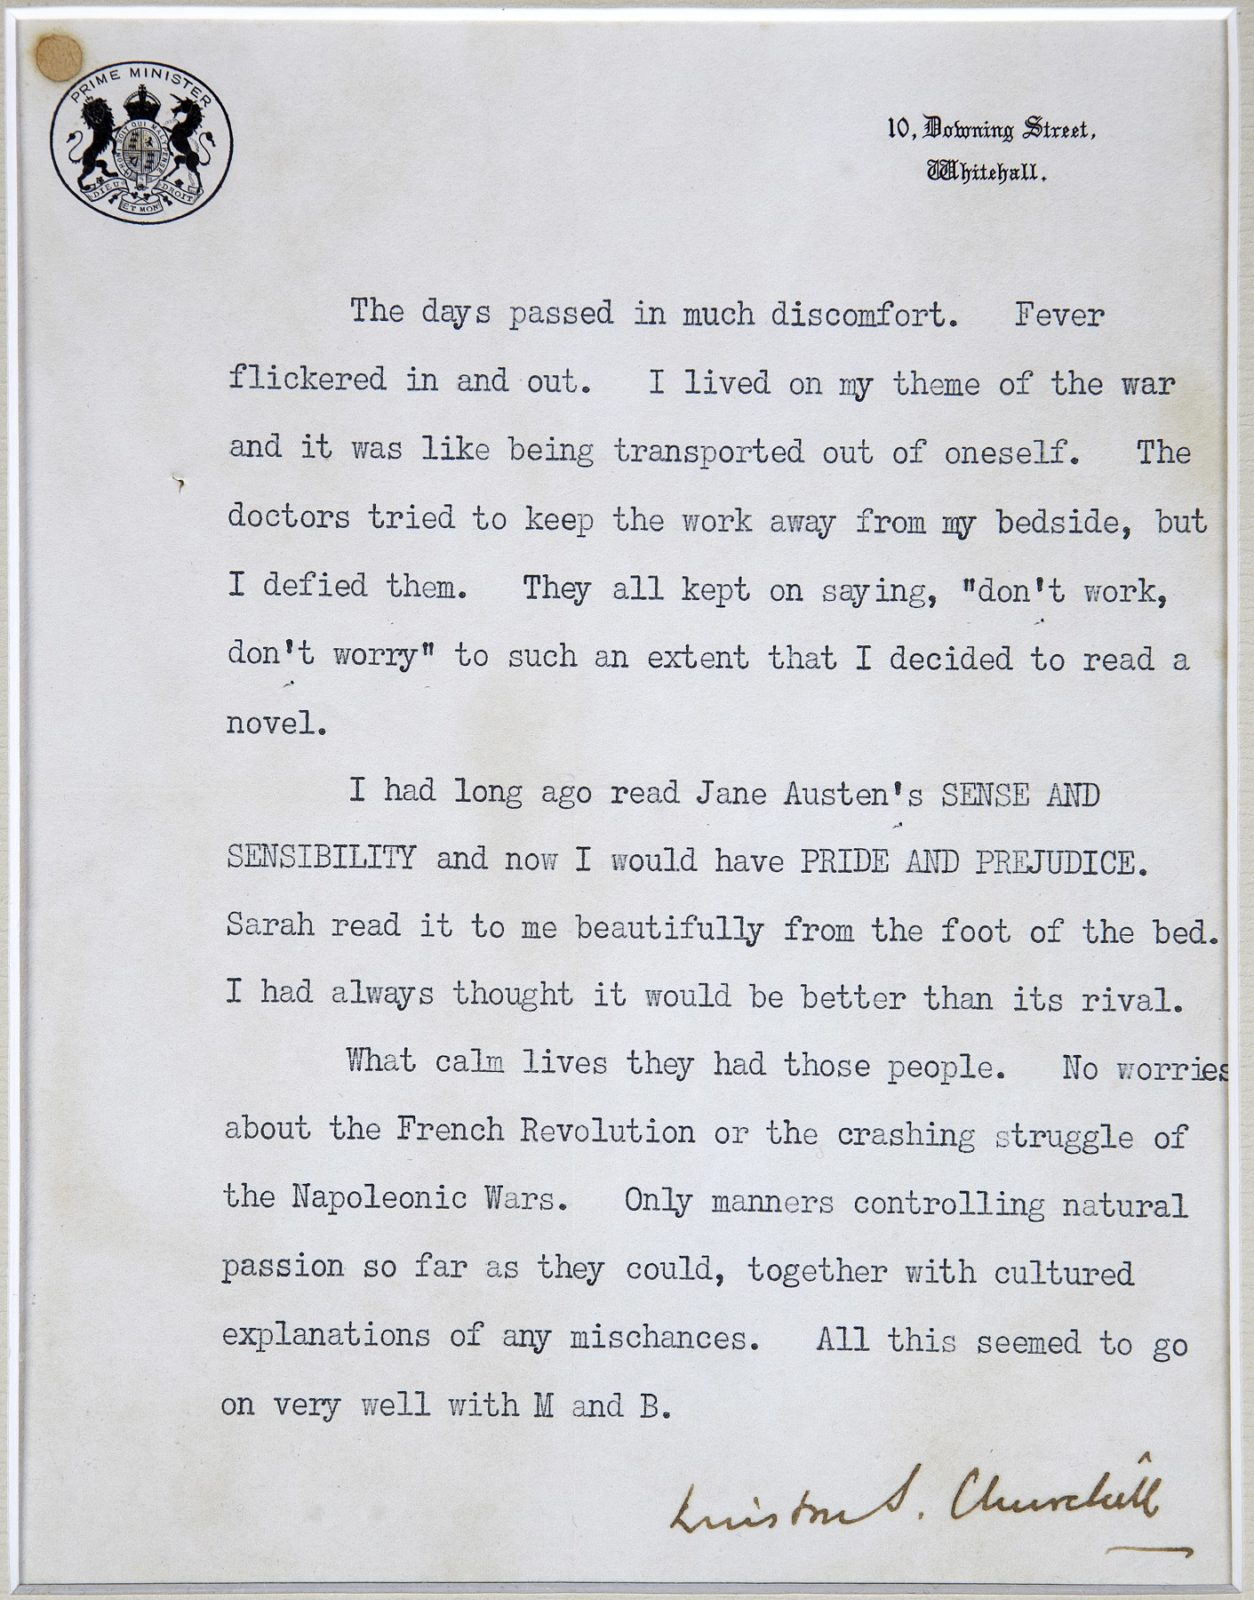 Winston Churchill memoir extract, typed and signed